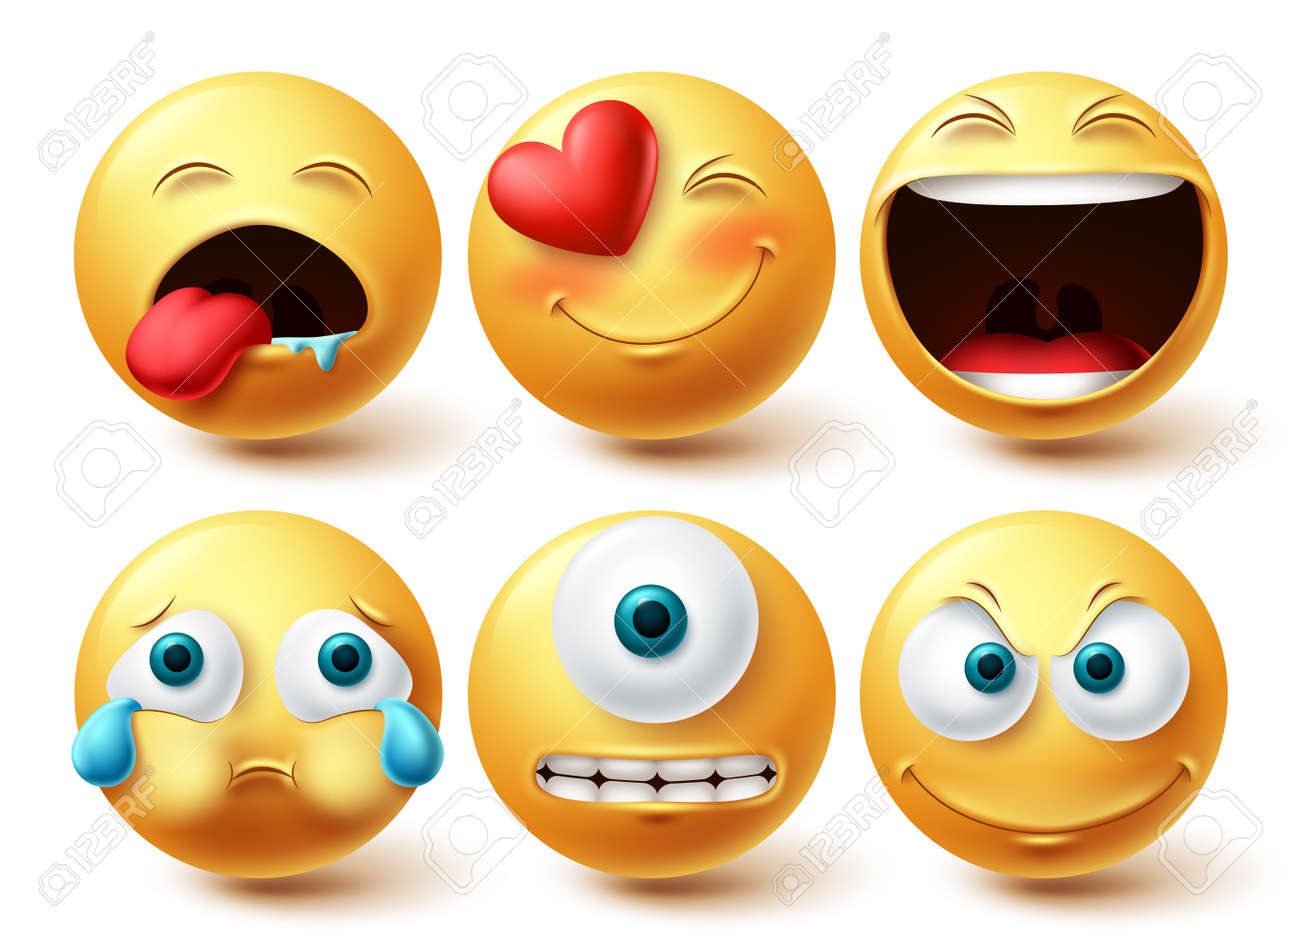 Smiley emoji vector set. Smileys emoticon happy, cute, crying and cyclops eye yellow icon collection isolated in white background for graphic elements design. Vector illustration - 171747807